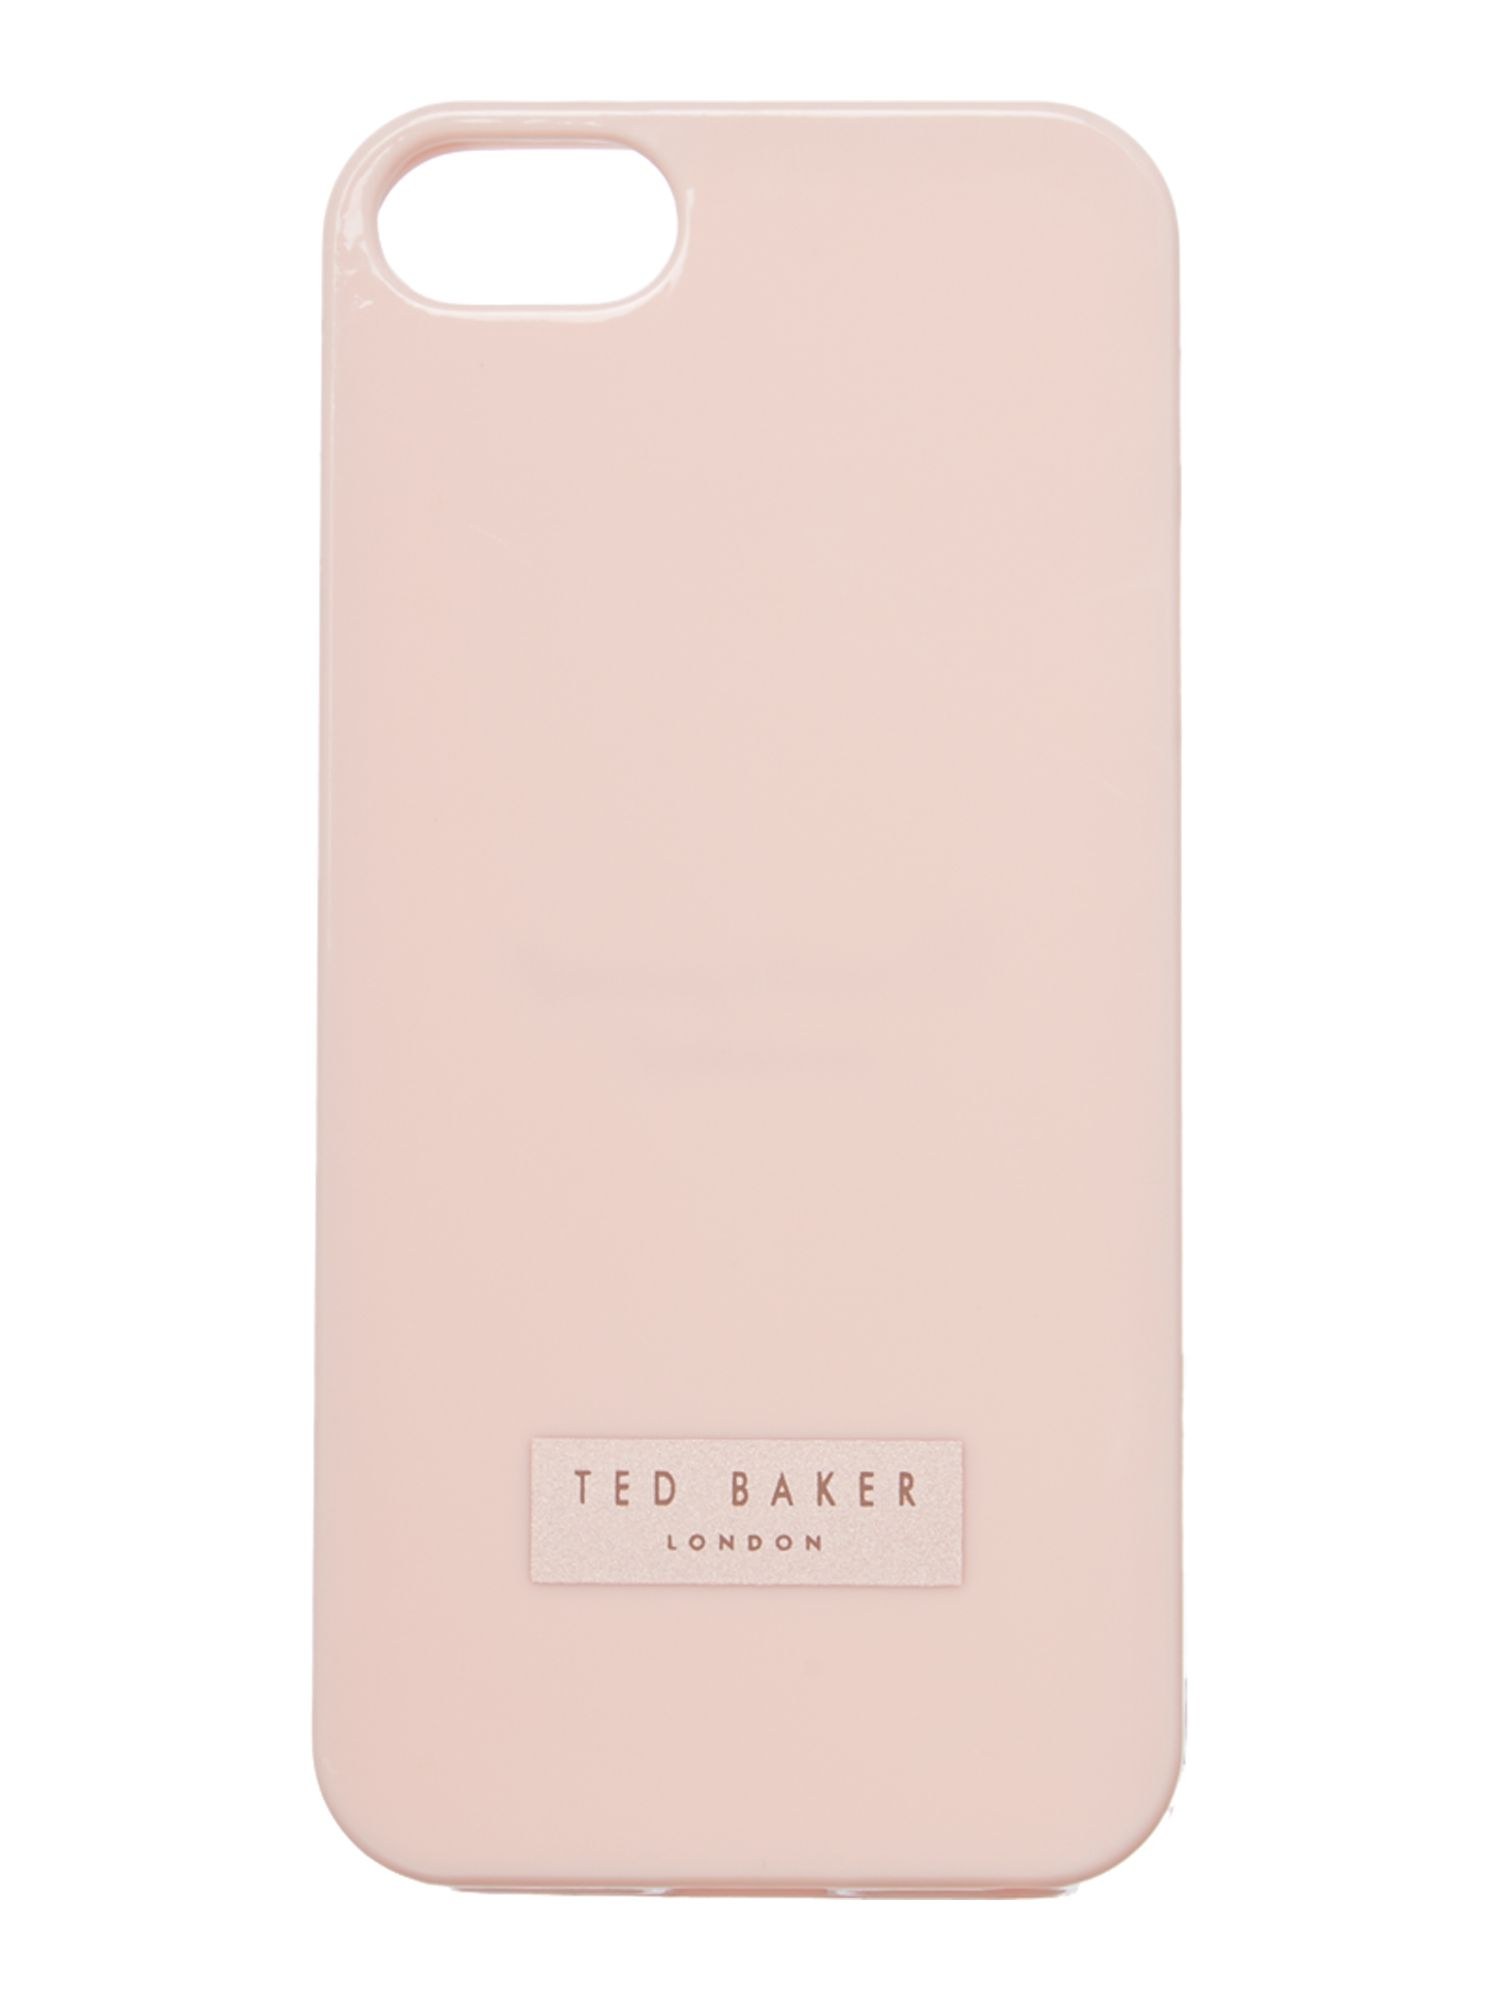 Ted Baker Jelly Nude Iphone 5 Case In Pink  Lyst-5055